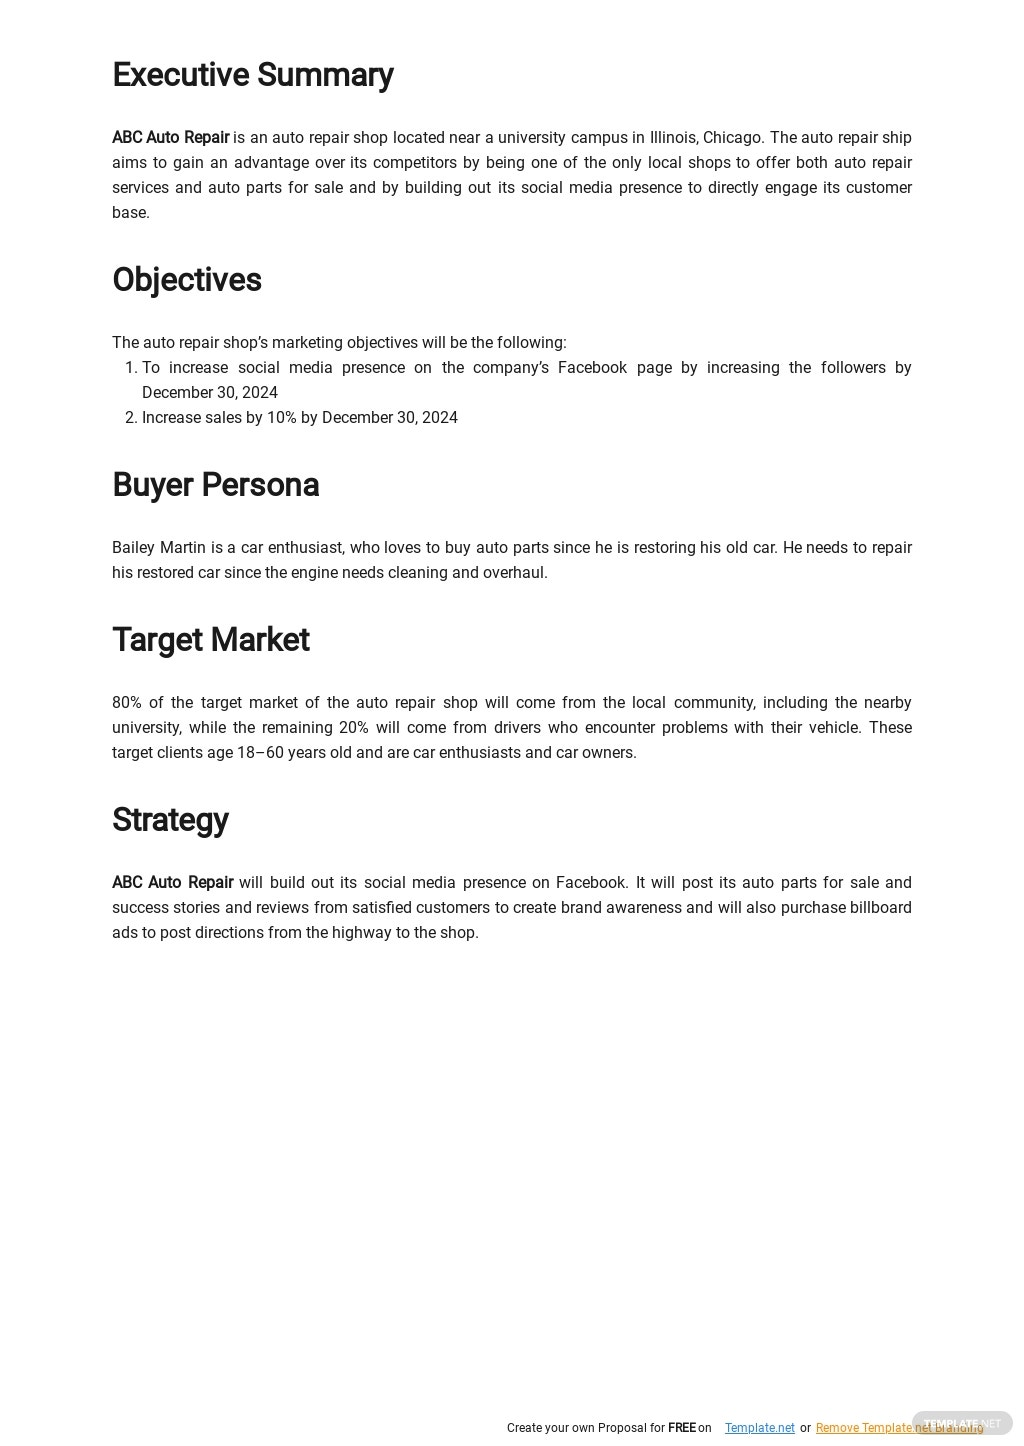 Simple Marketing Plan Template for Small Business 1.jpe